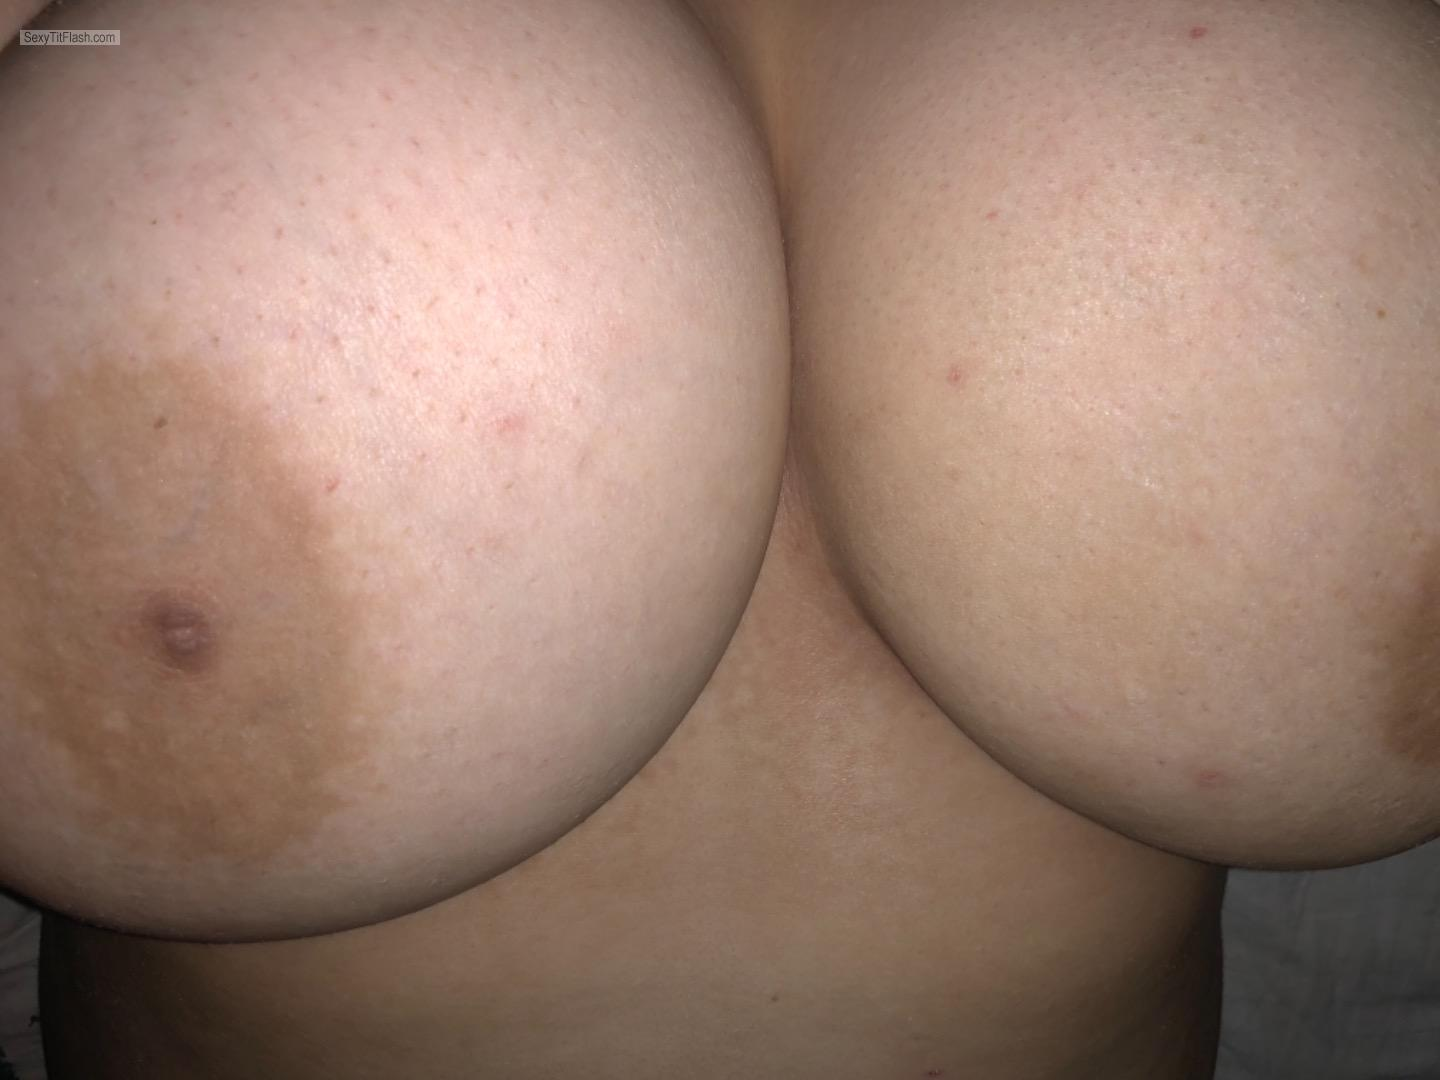 Tit Flash: My Very Big Tits (Selfie) - Trinity from United States